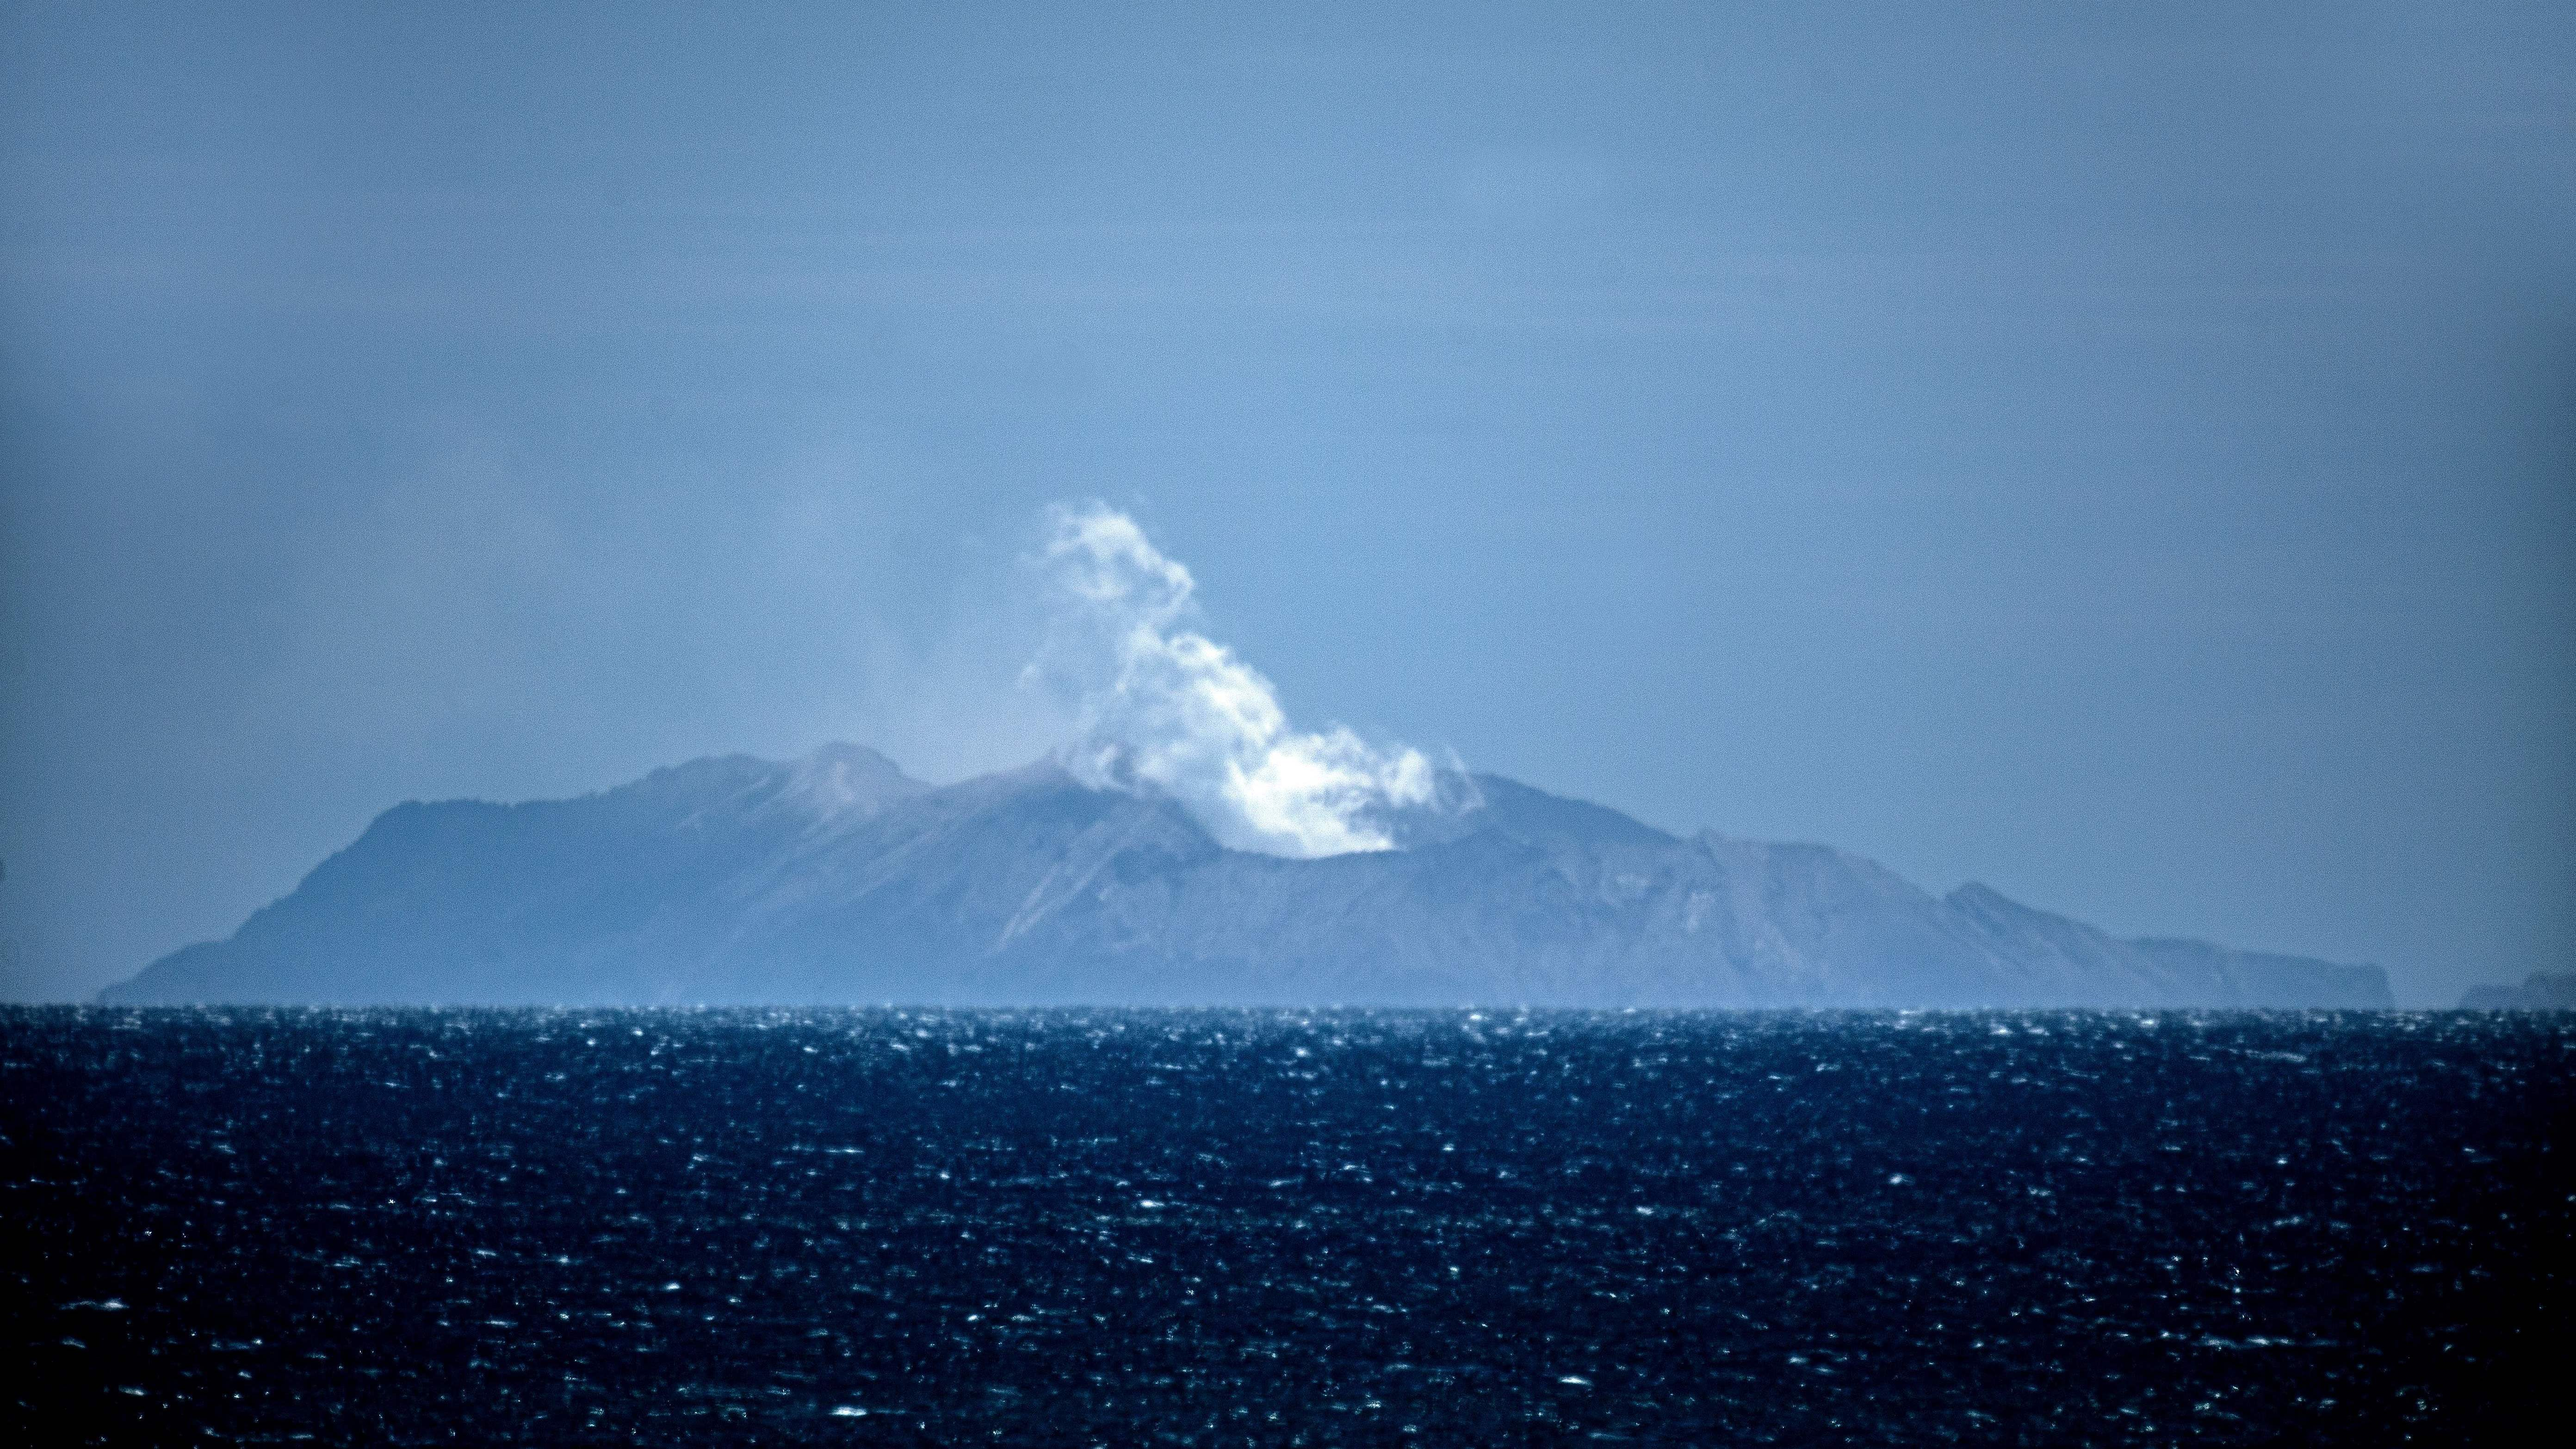 Tough Questions 'Must Be Answered' After New Zealand's Deadly Volcano Eruption